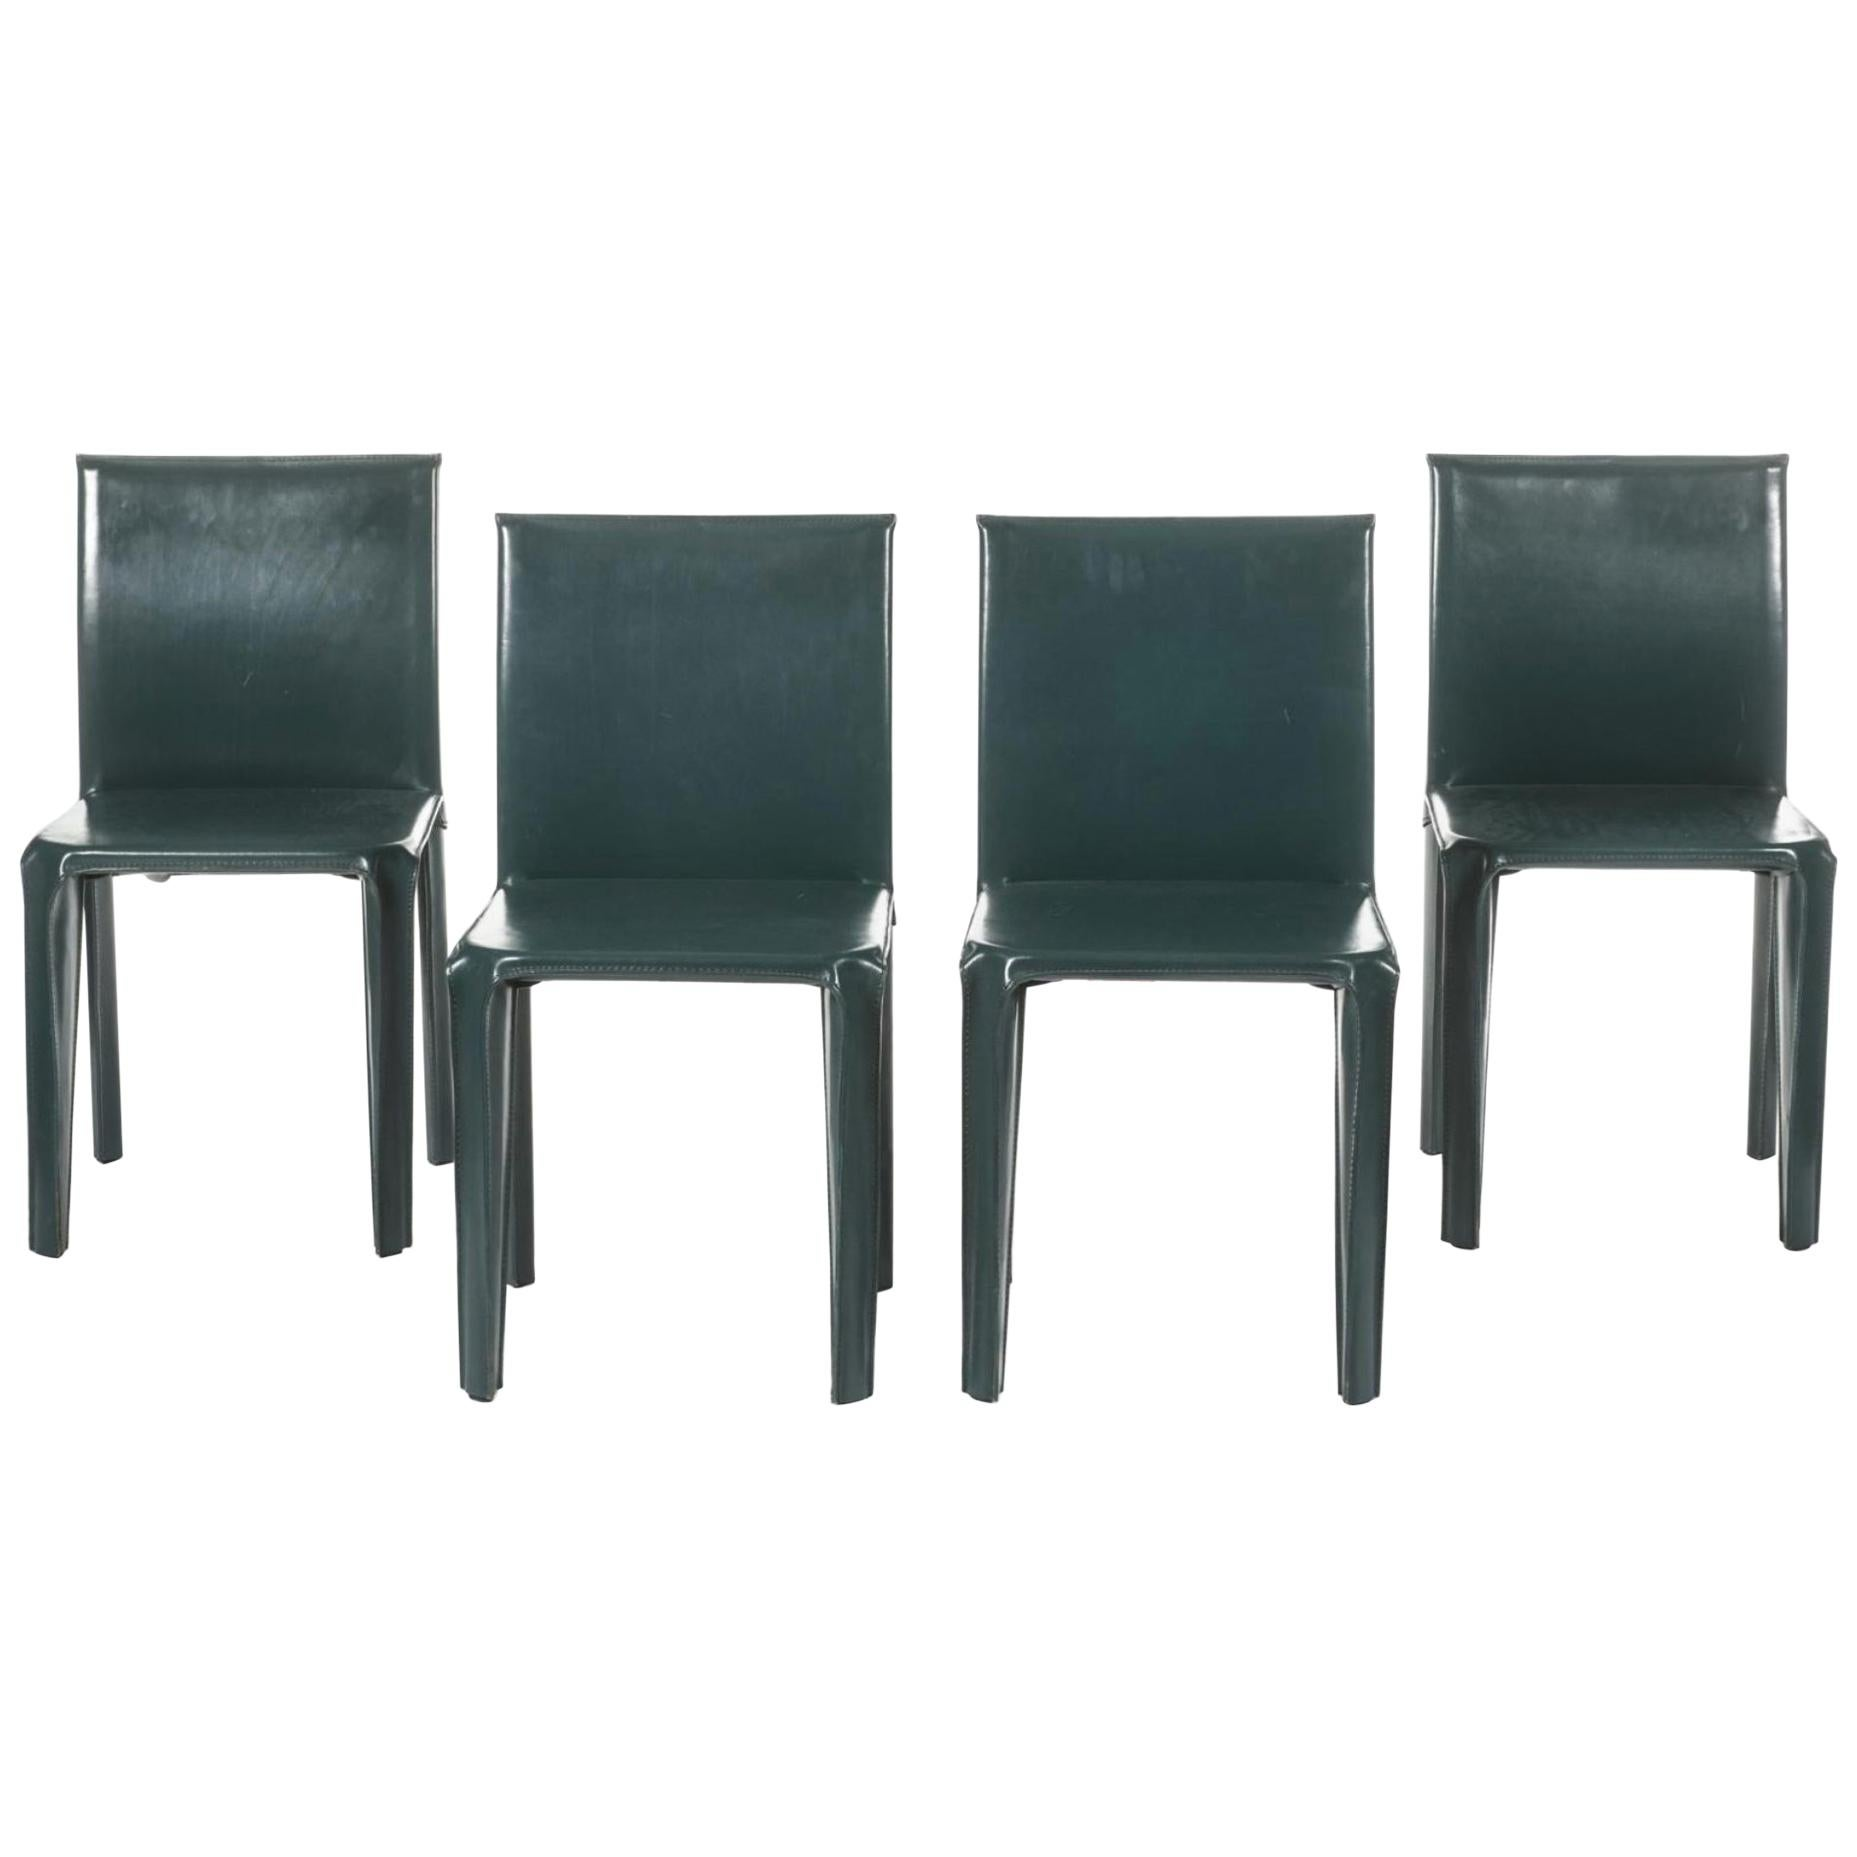 Four Italian Olive Green Leather Chairs by Arper, 1970